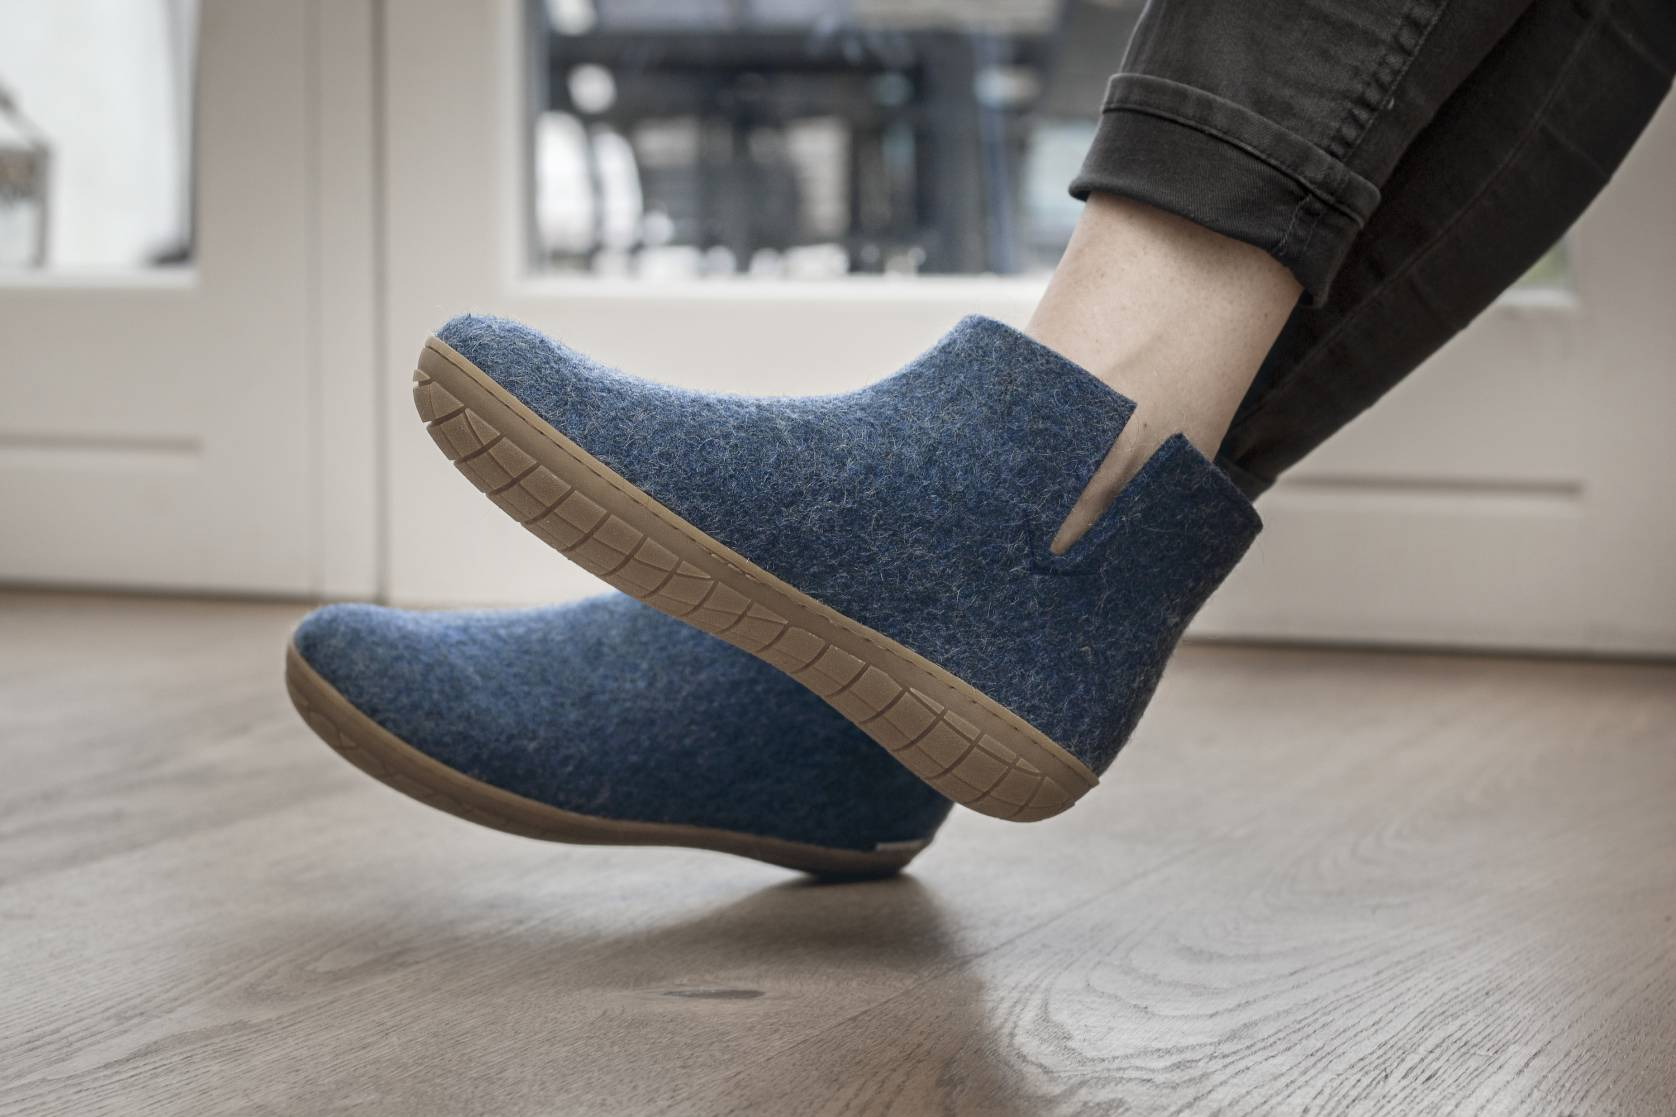 Best Slippers for Men and Women